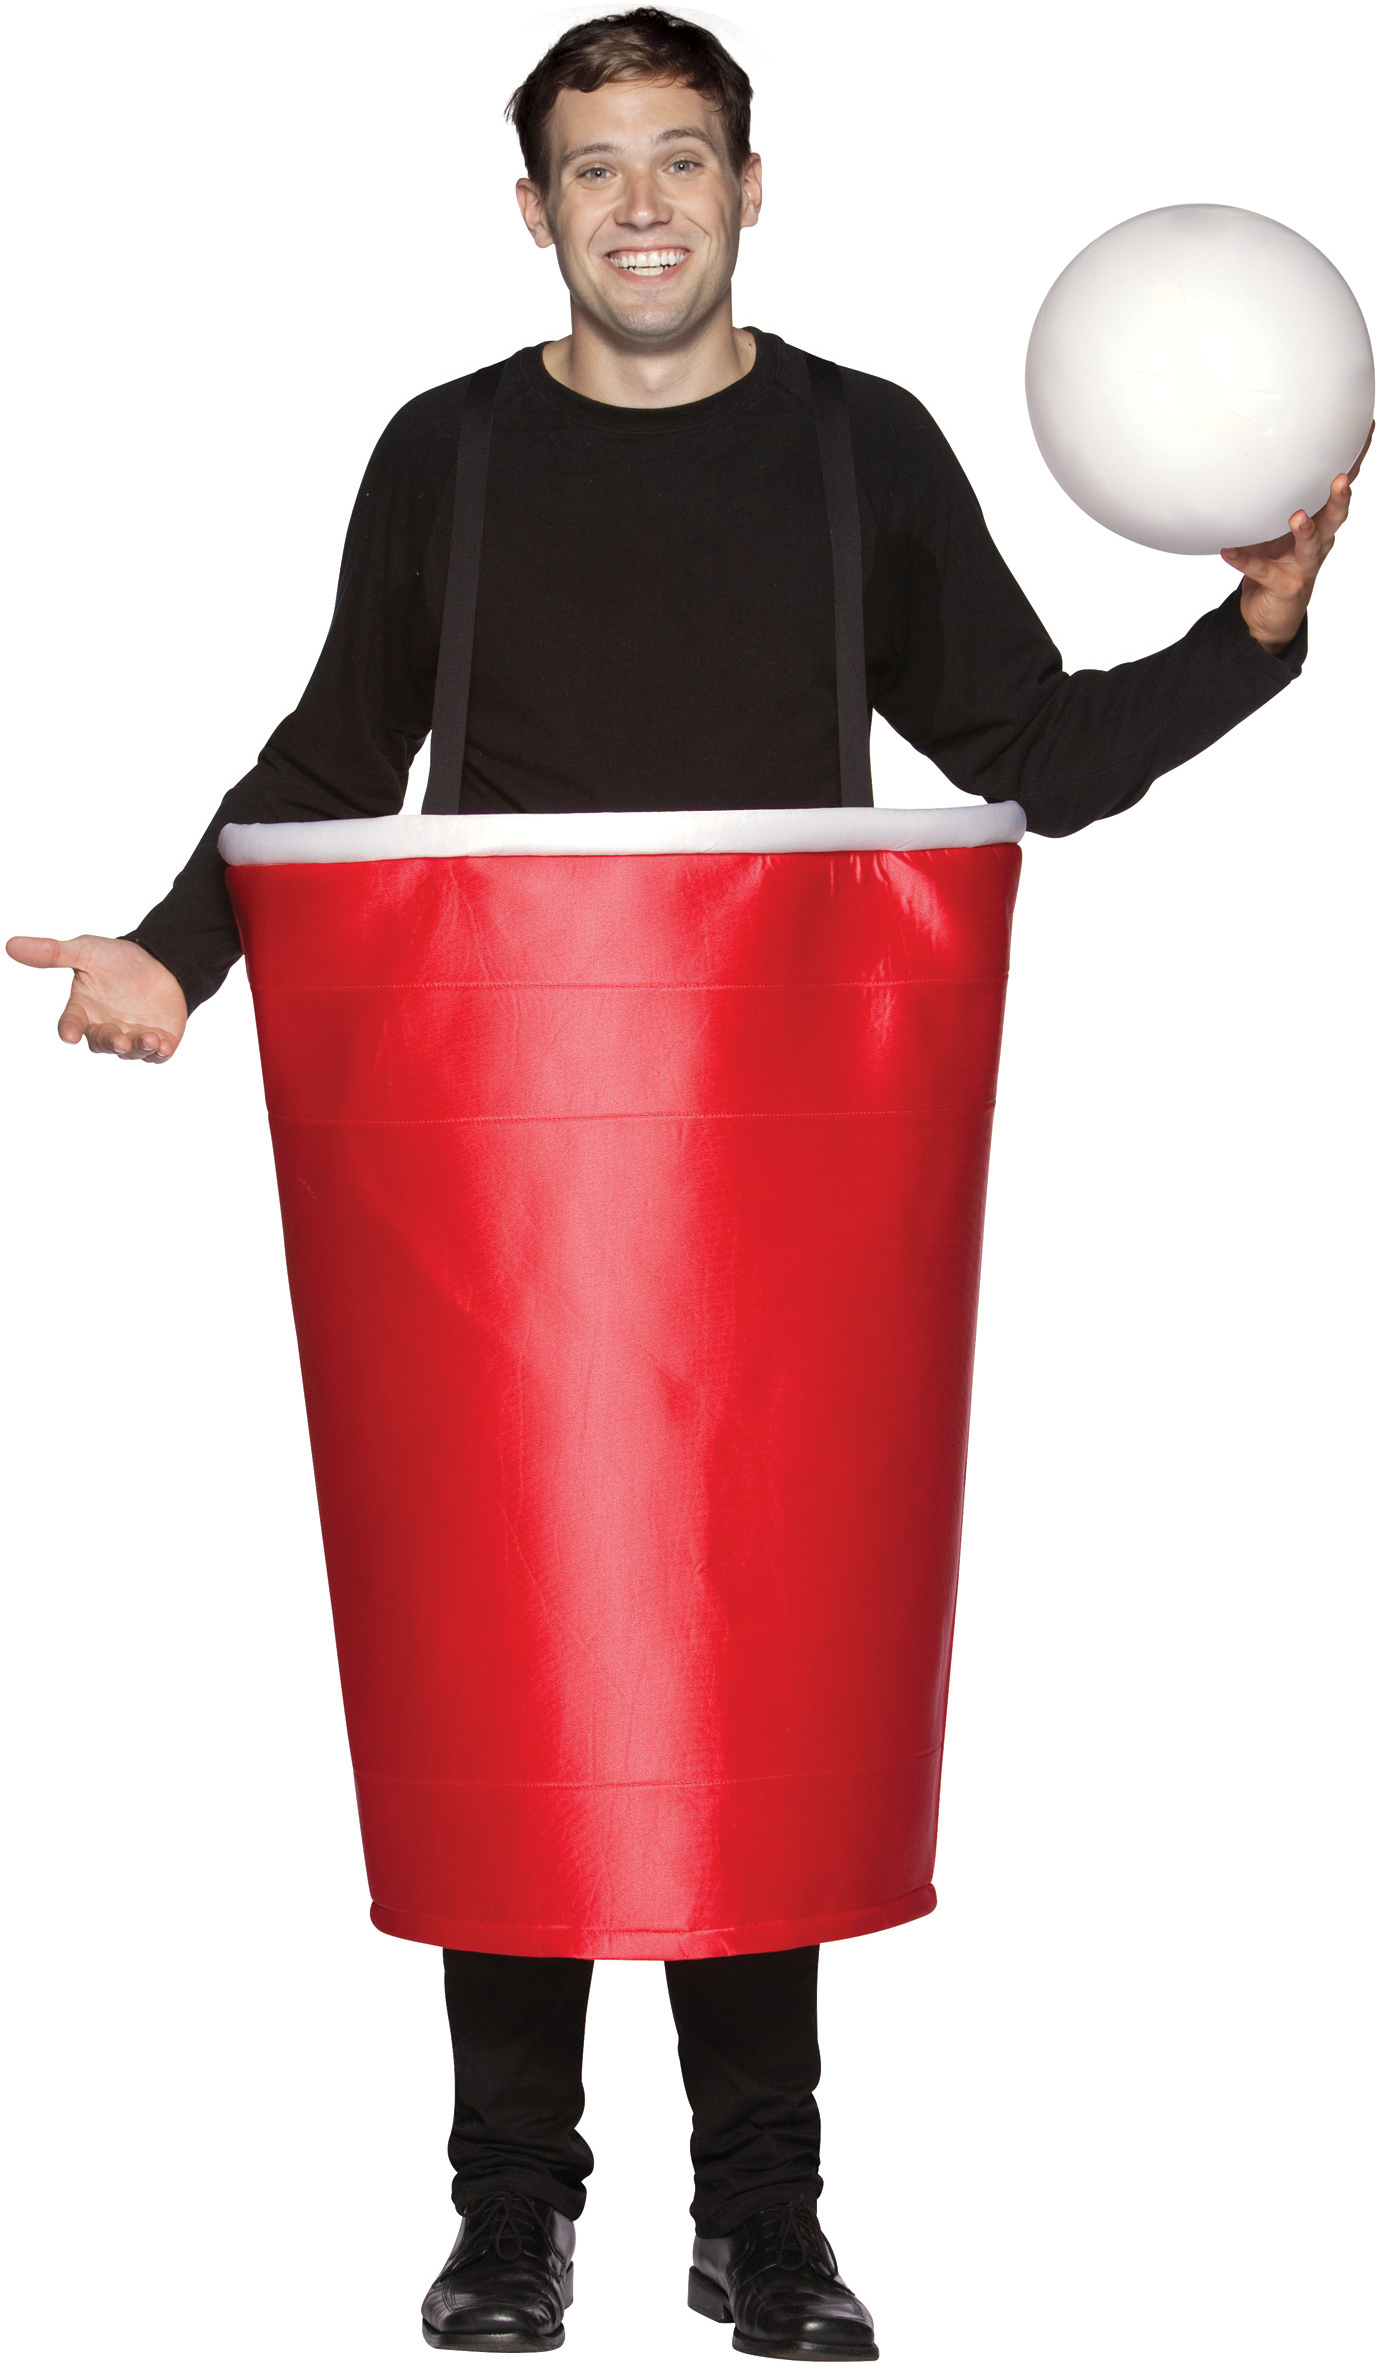 Men's Beer Pong Cup Adult Costume - Red - One Size Fits Most Adults BS-188581